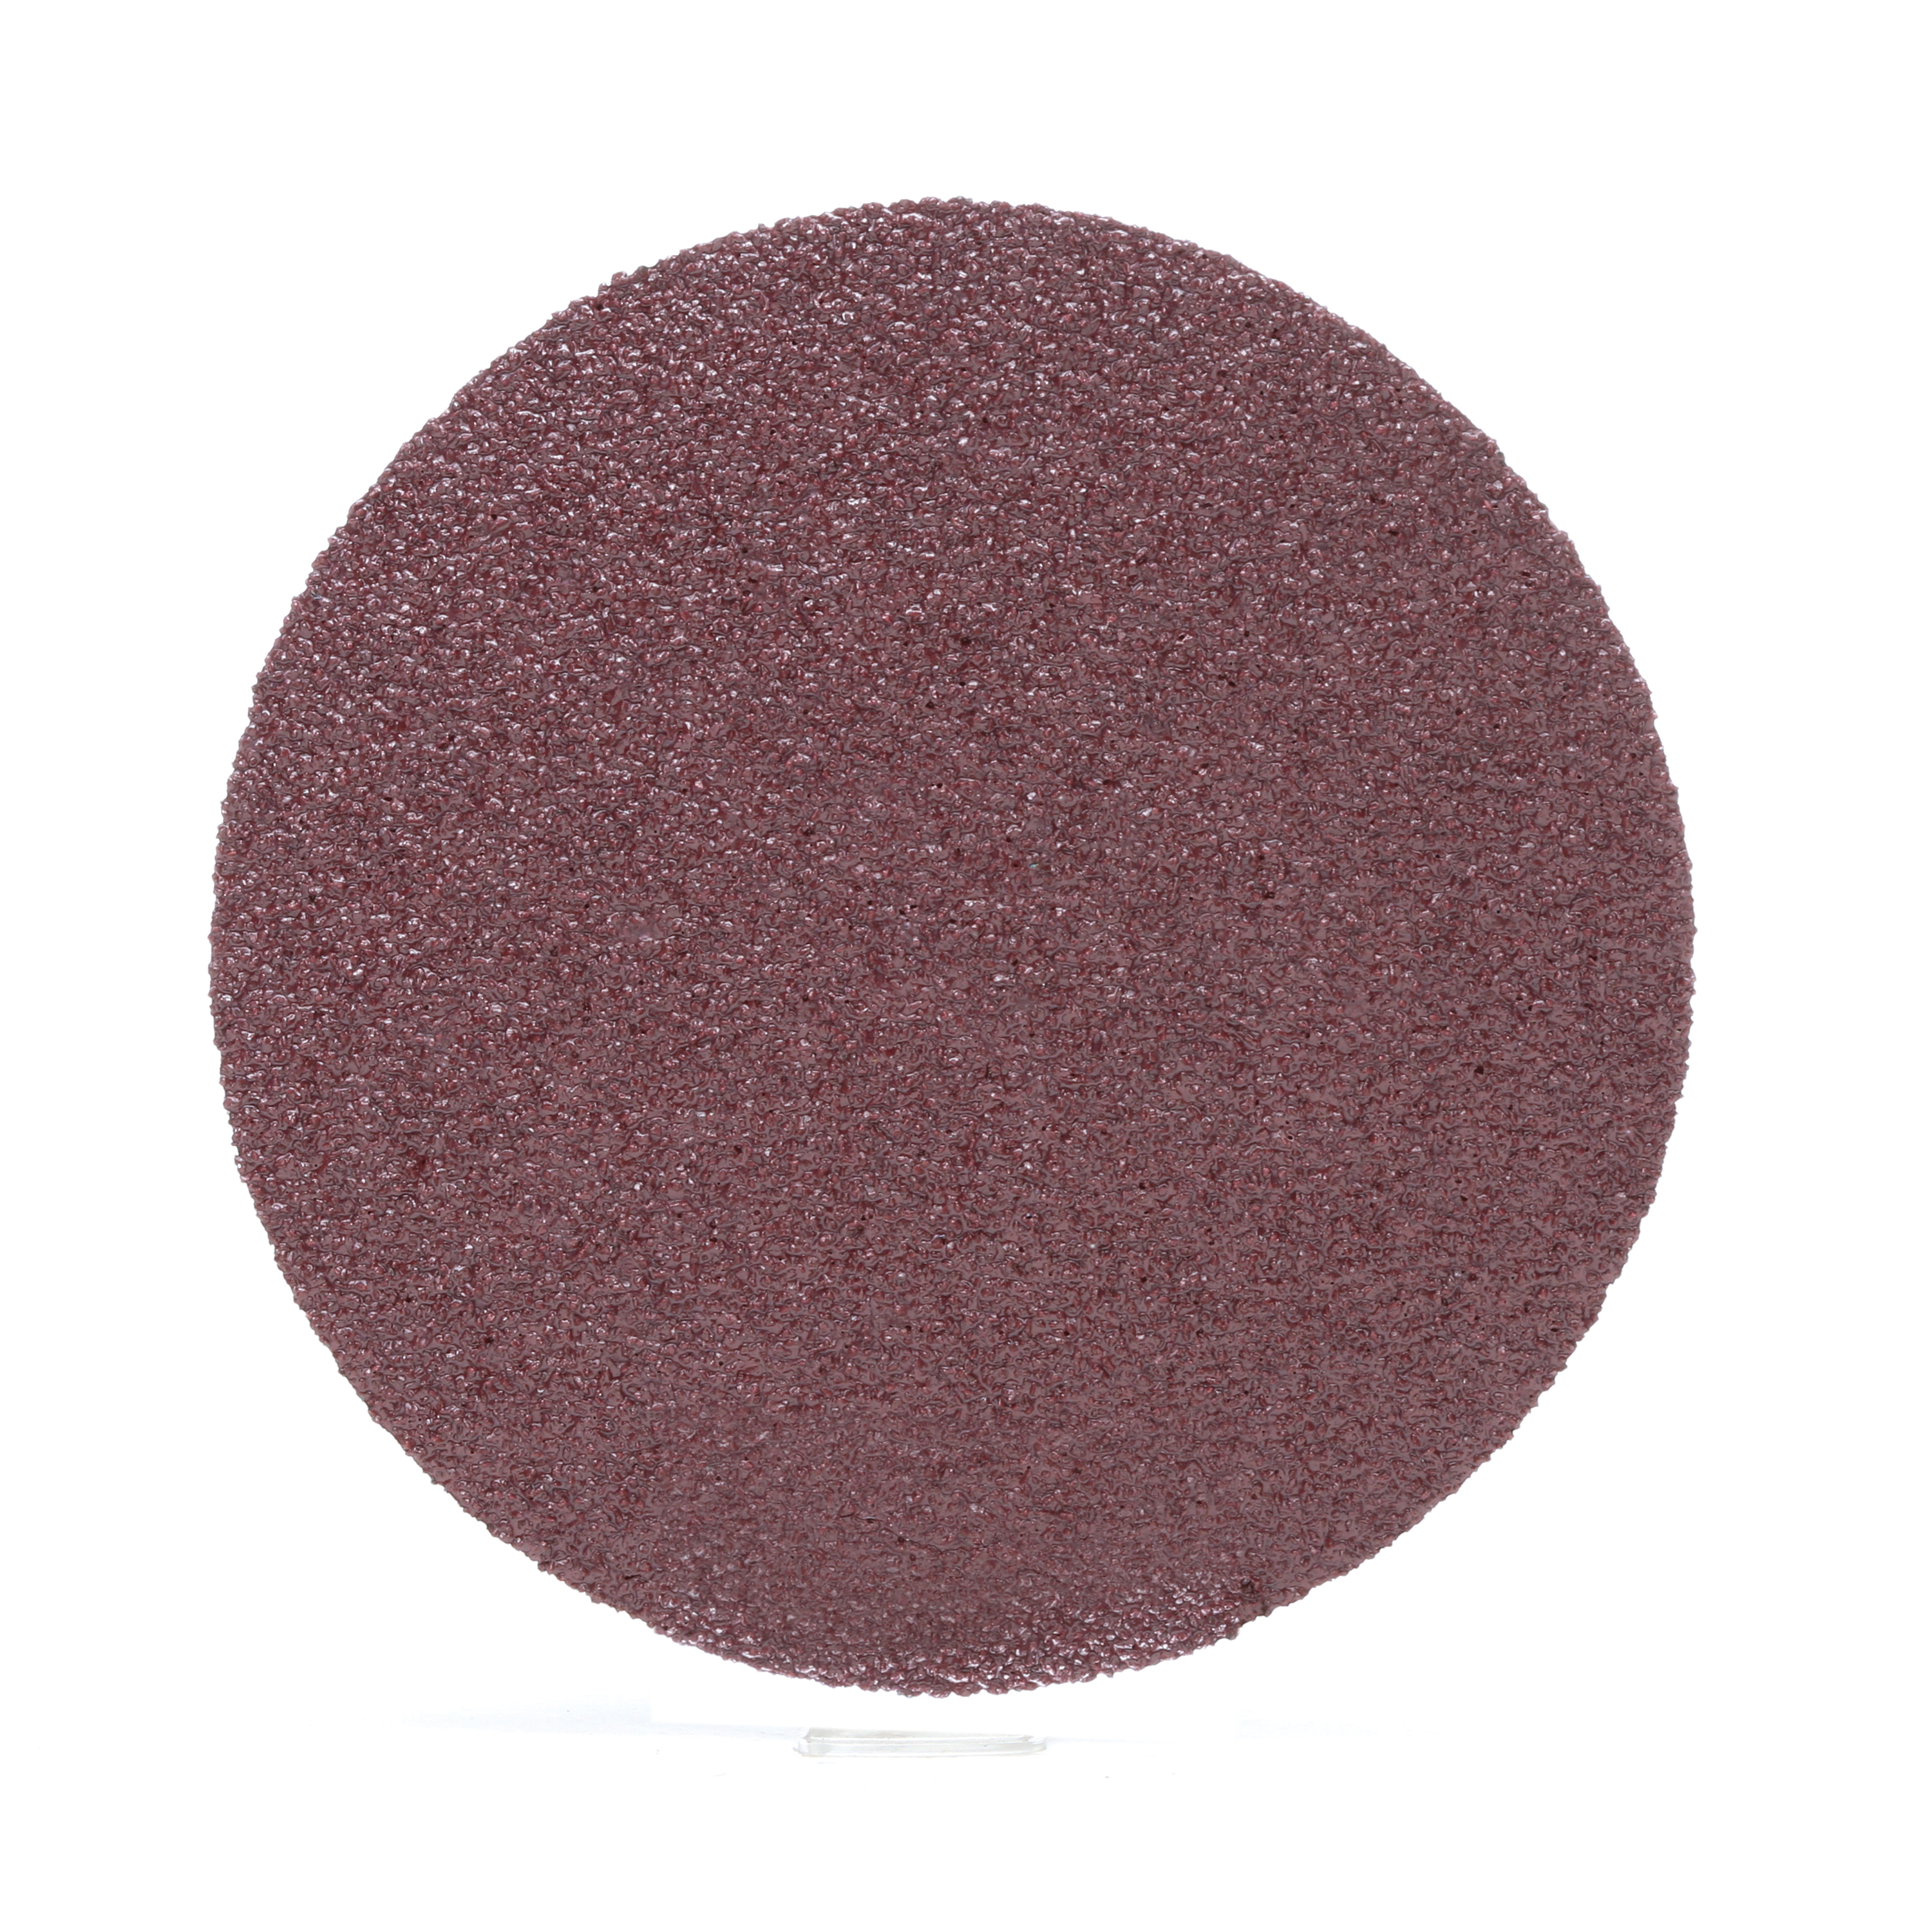 3M™ 051144-01334 Heavy Duty PSA Close Coated Abrasive Disc, 3 in Dia, 50 Grit, Coarse Grade, Aluminum Oxide Abrasive, Cloth Backing